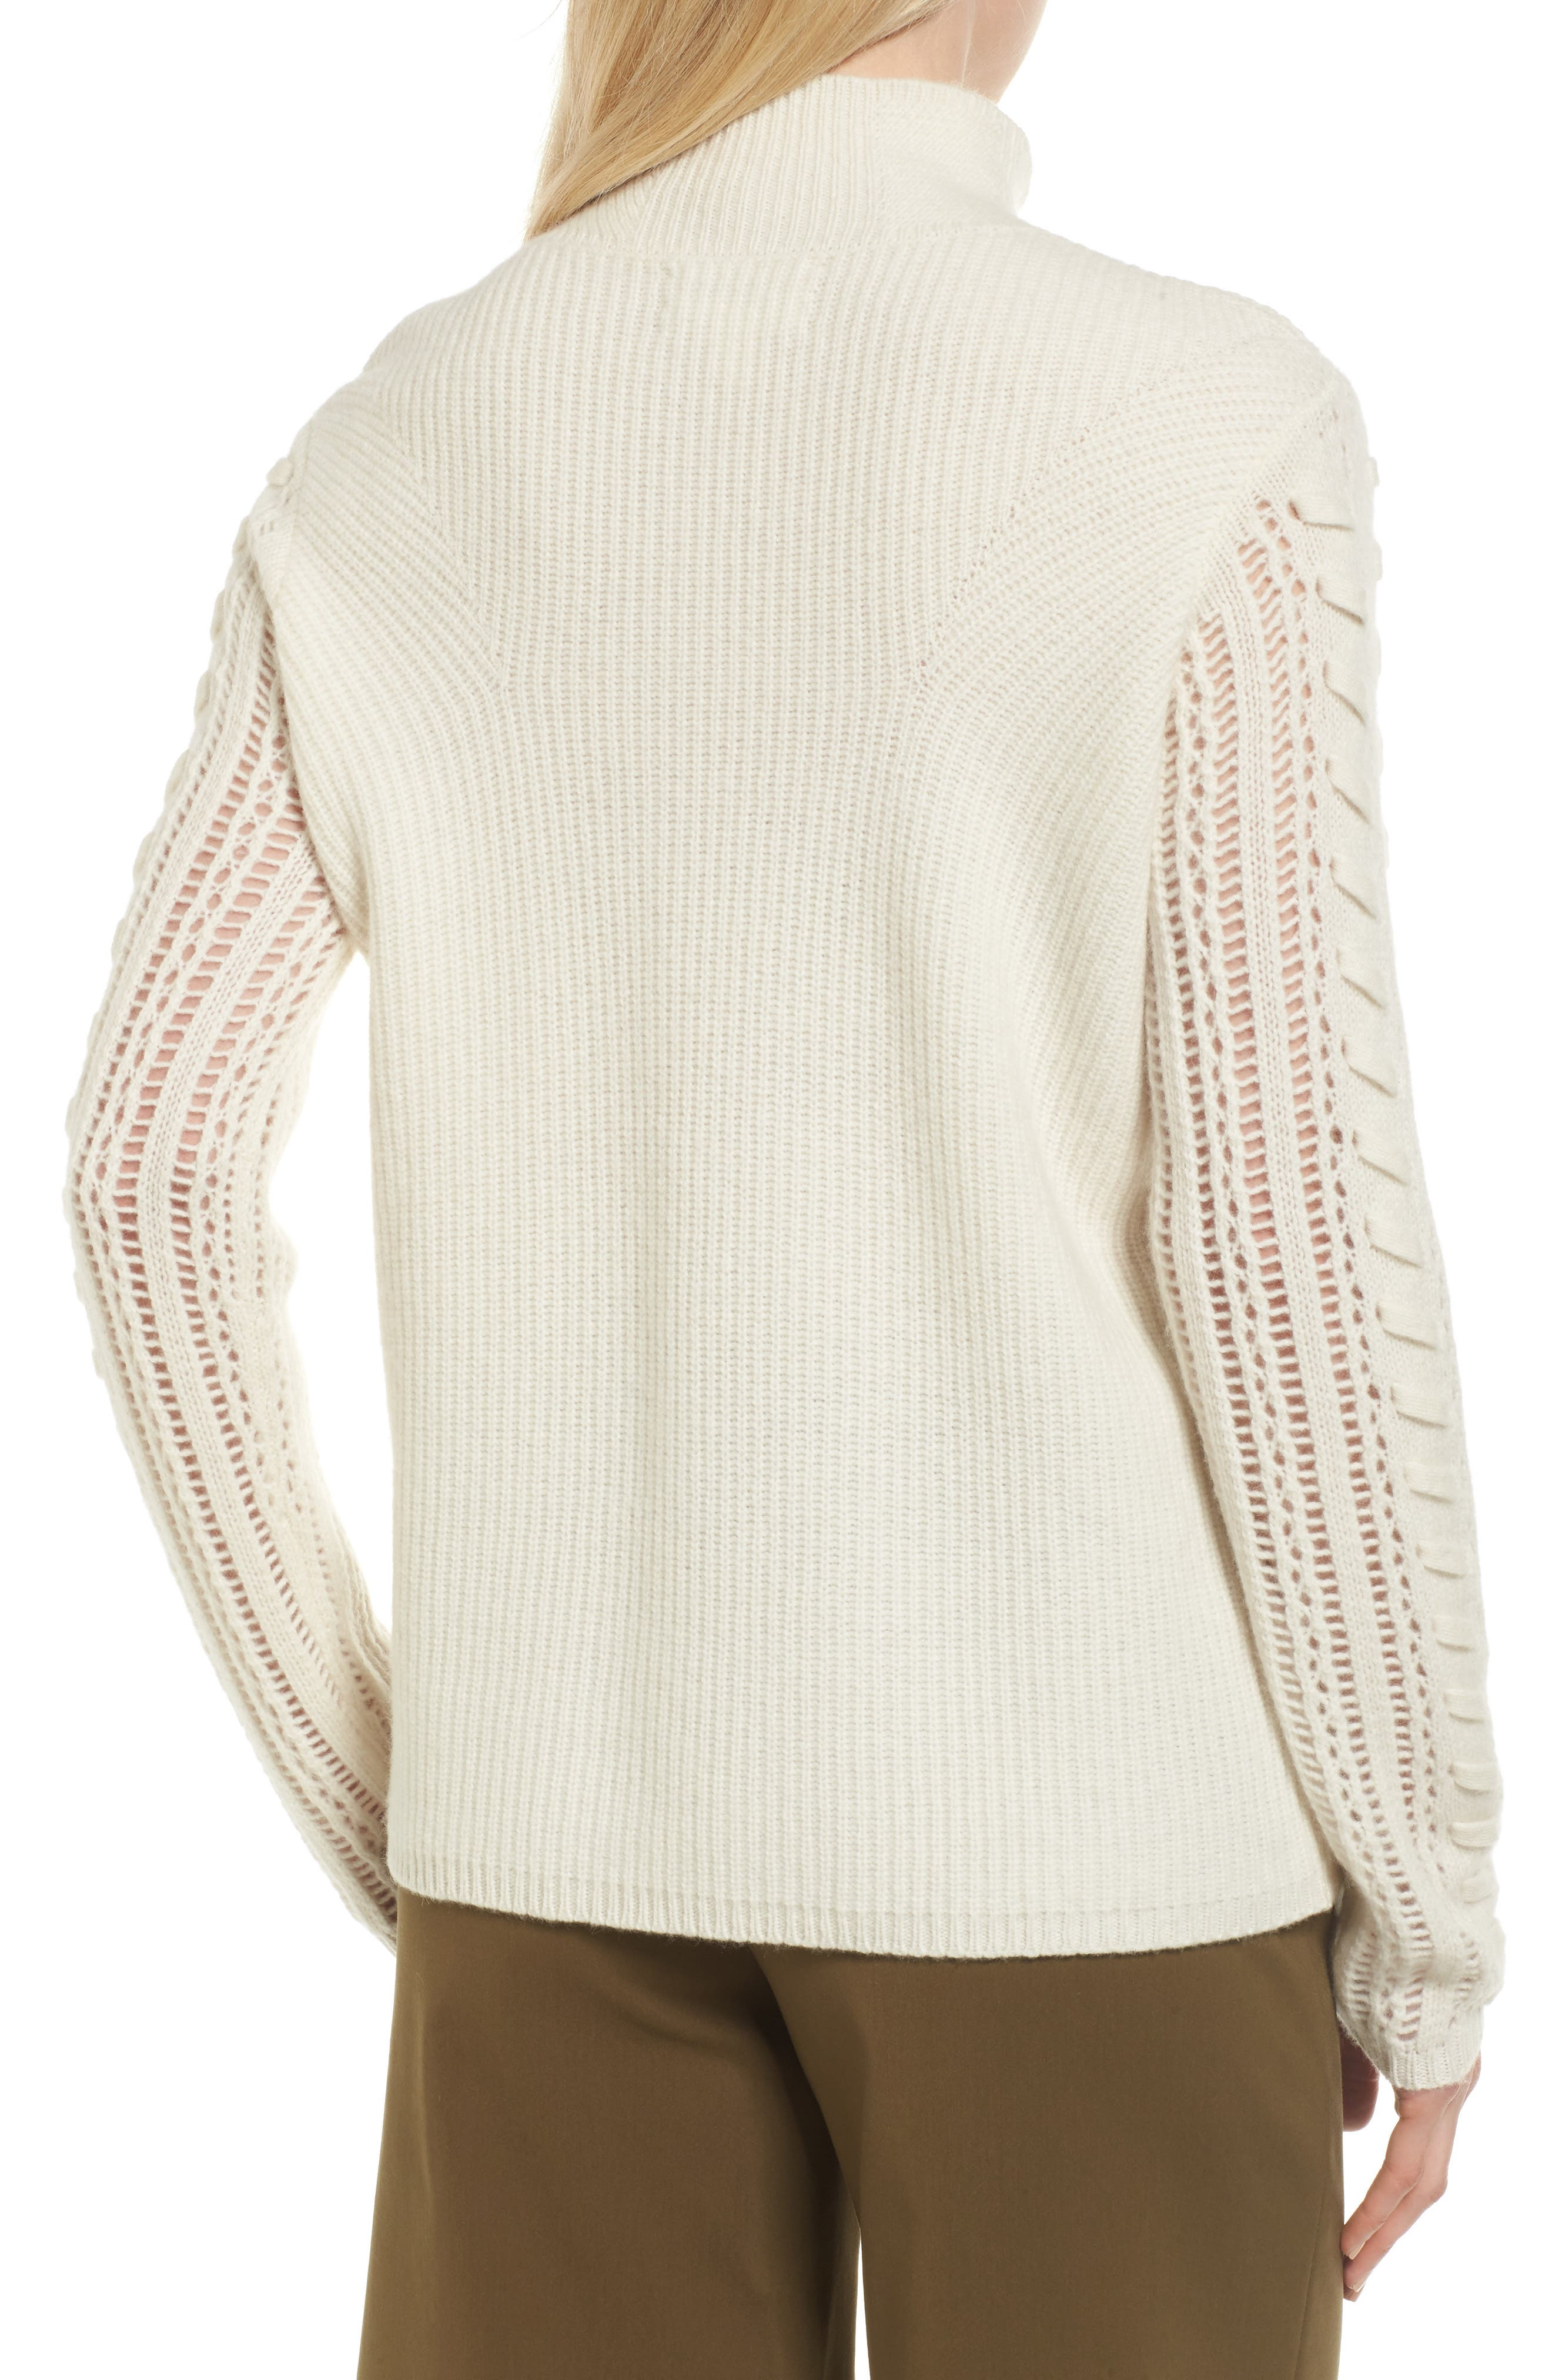 Mixed Stitch Cashmere Sweater,                             Alternate thumbnail 2, color,                             900